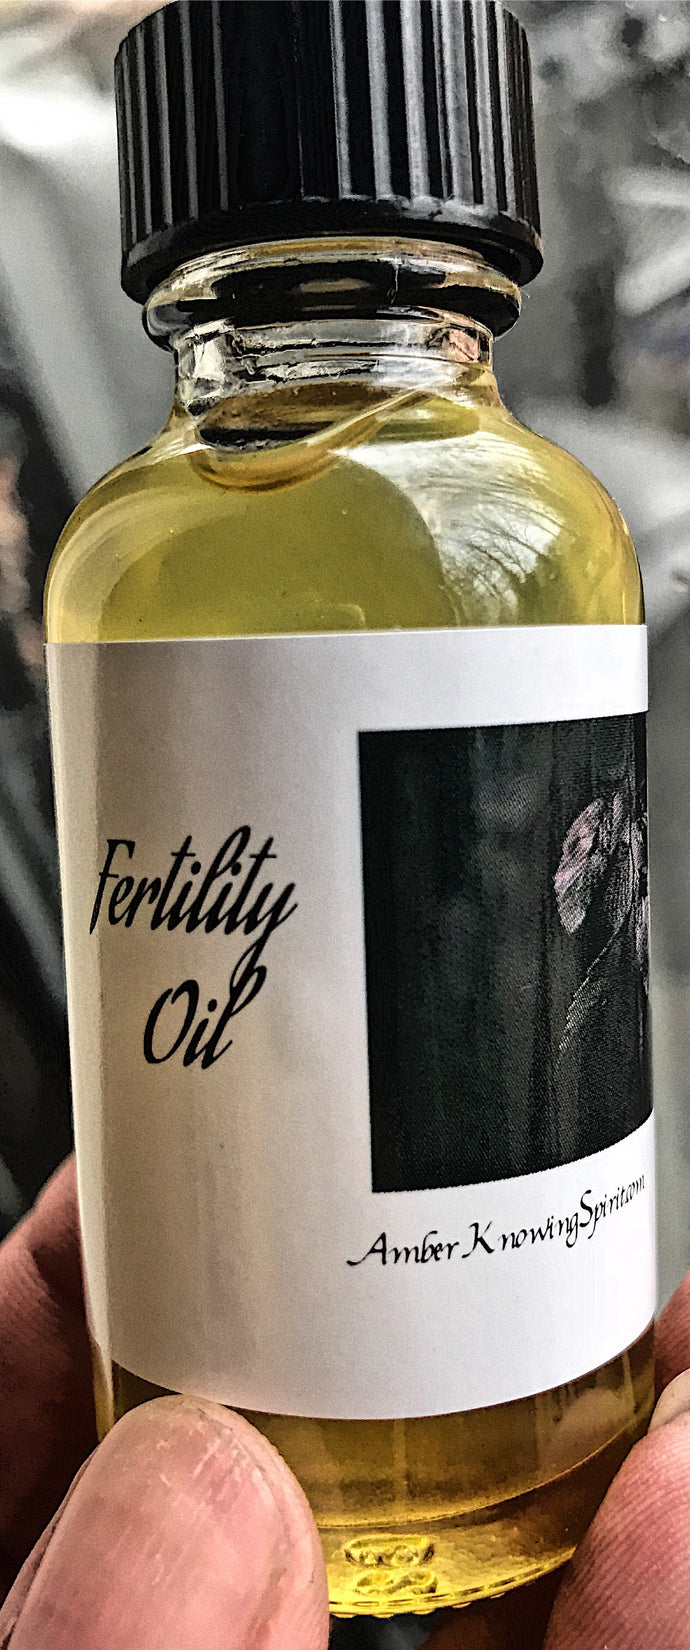 Fertility oil - KnowingSpirit